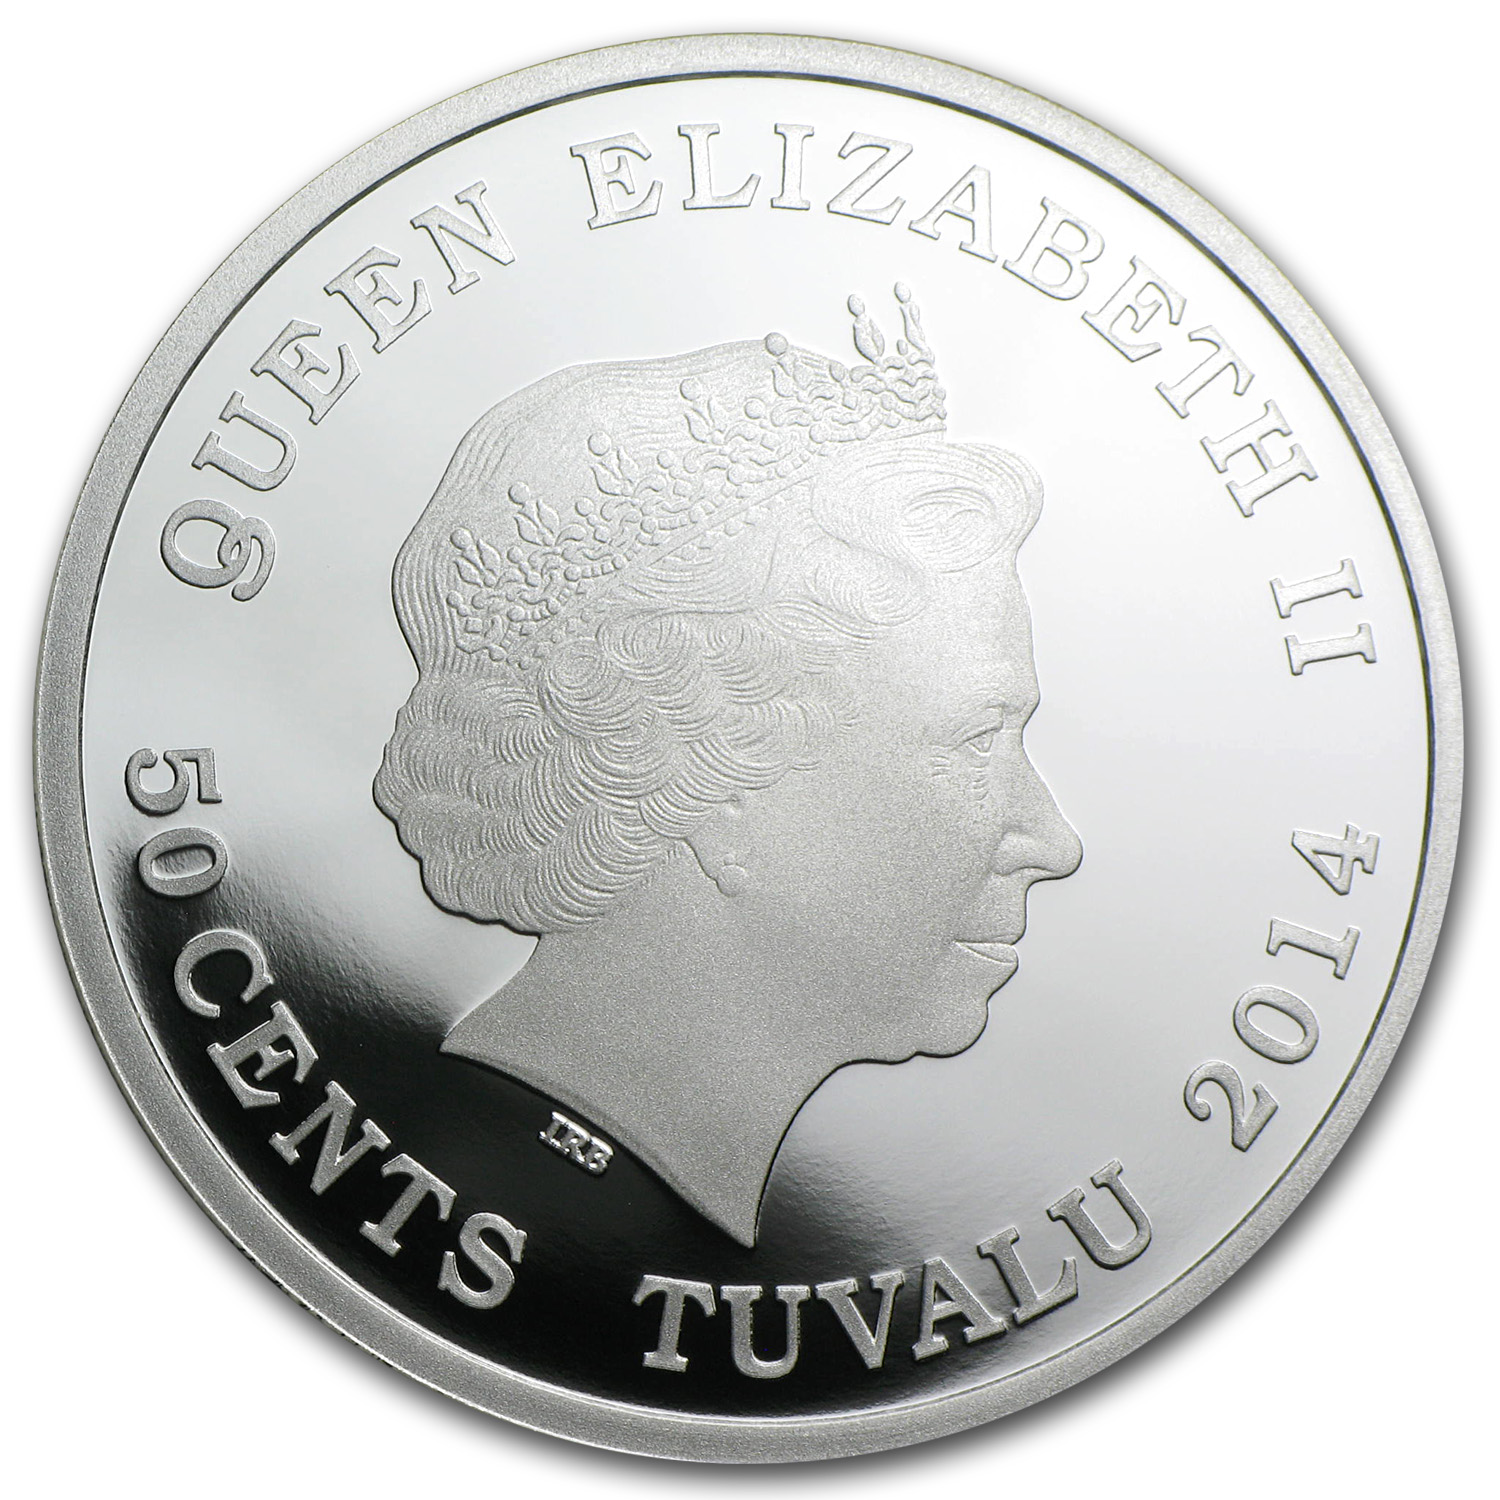 Tuvalu 2014 1/2 oz Forever Love Silver Proof Coin - Cockatoos